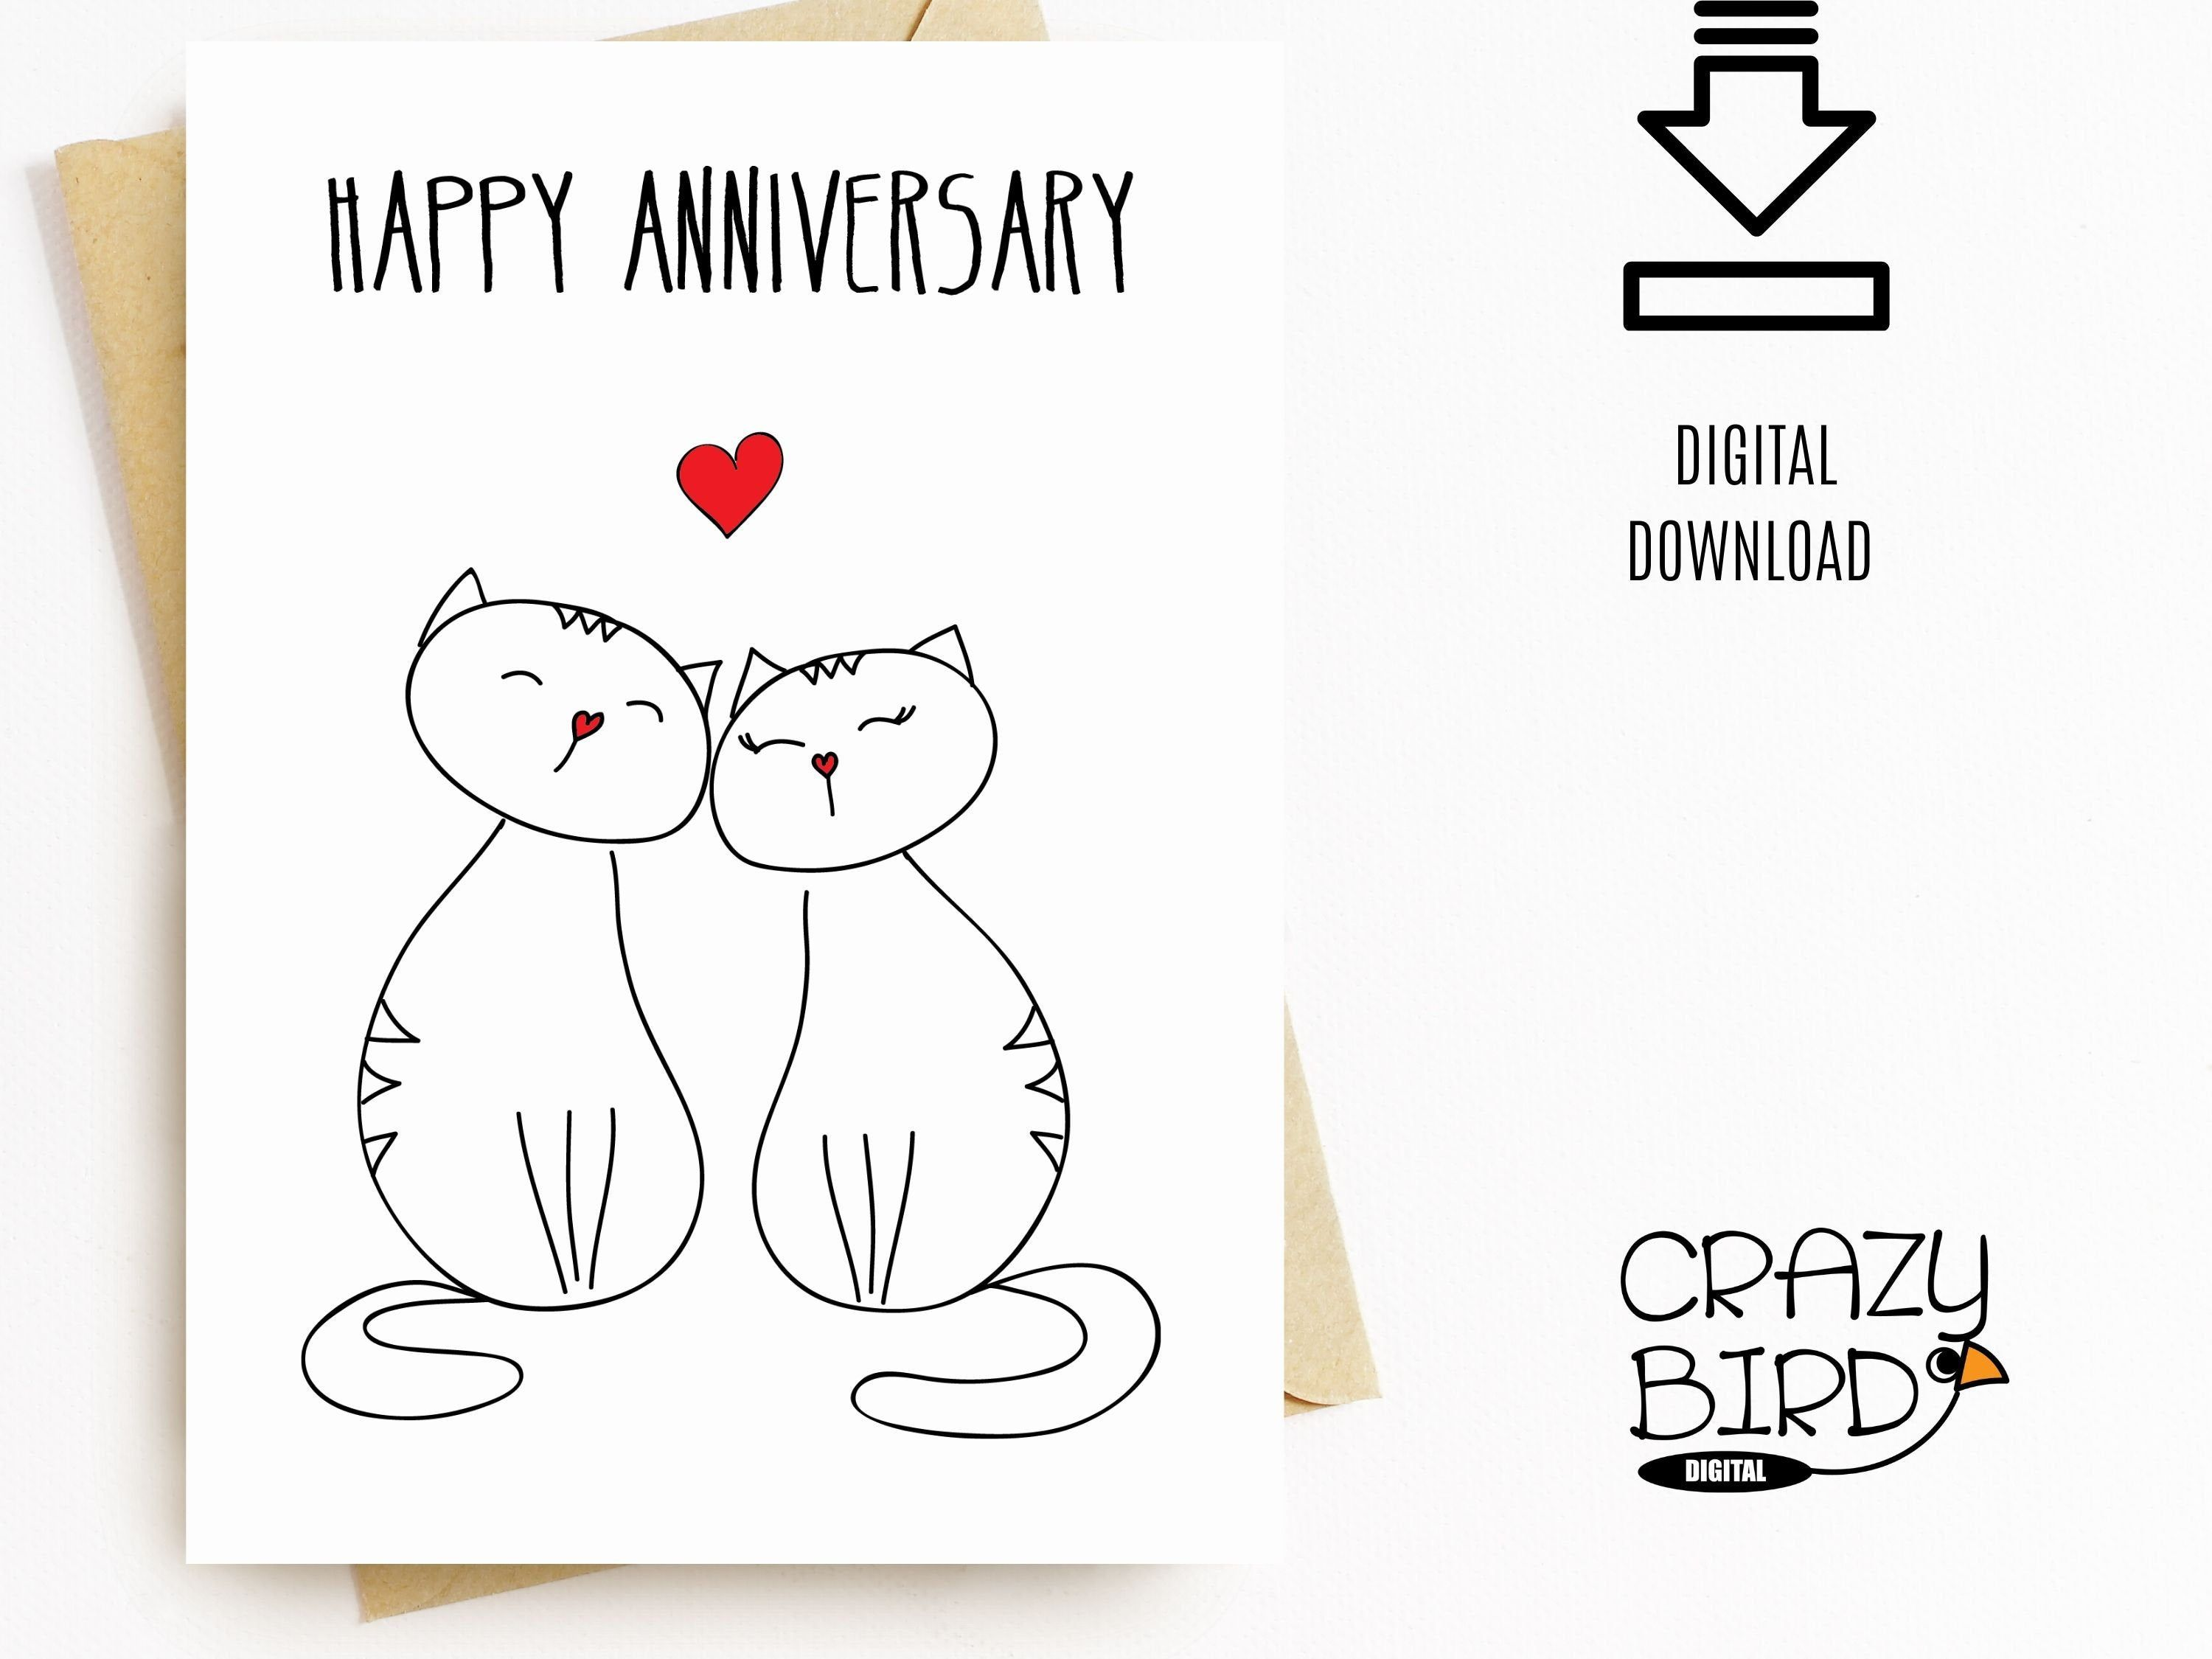 Printable Anniversary Card With Cats Printable Anniversary Etsy Printable Anniversary Cards Anniversary Cards For Wife Happy Anniversary Cards